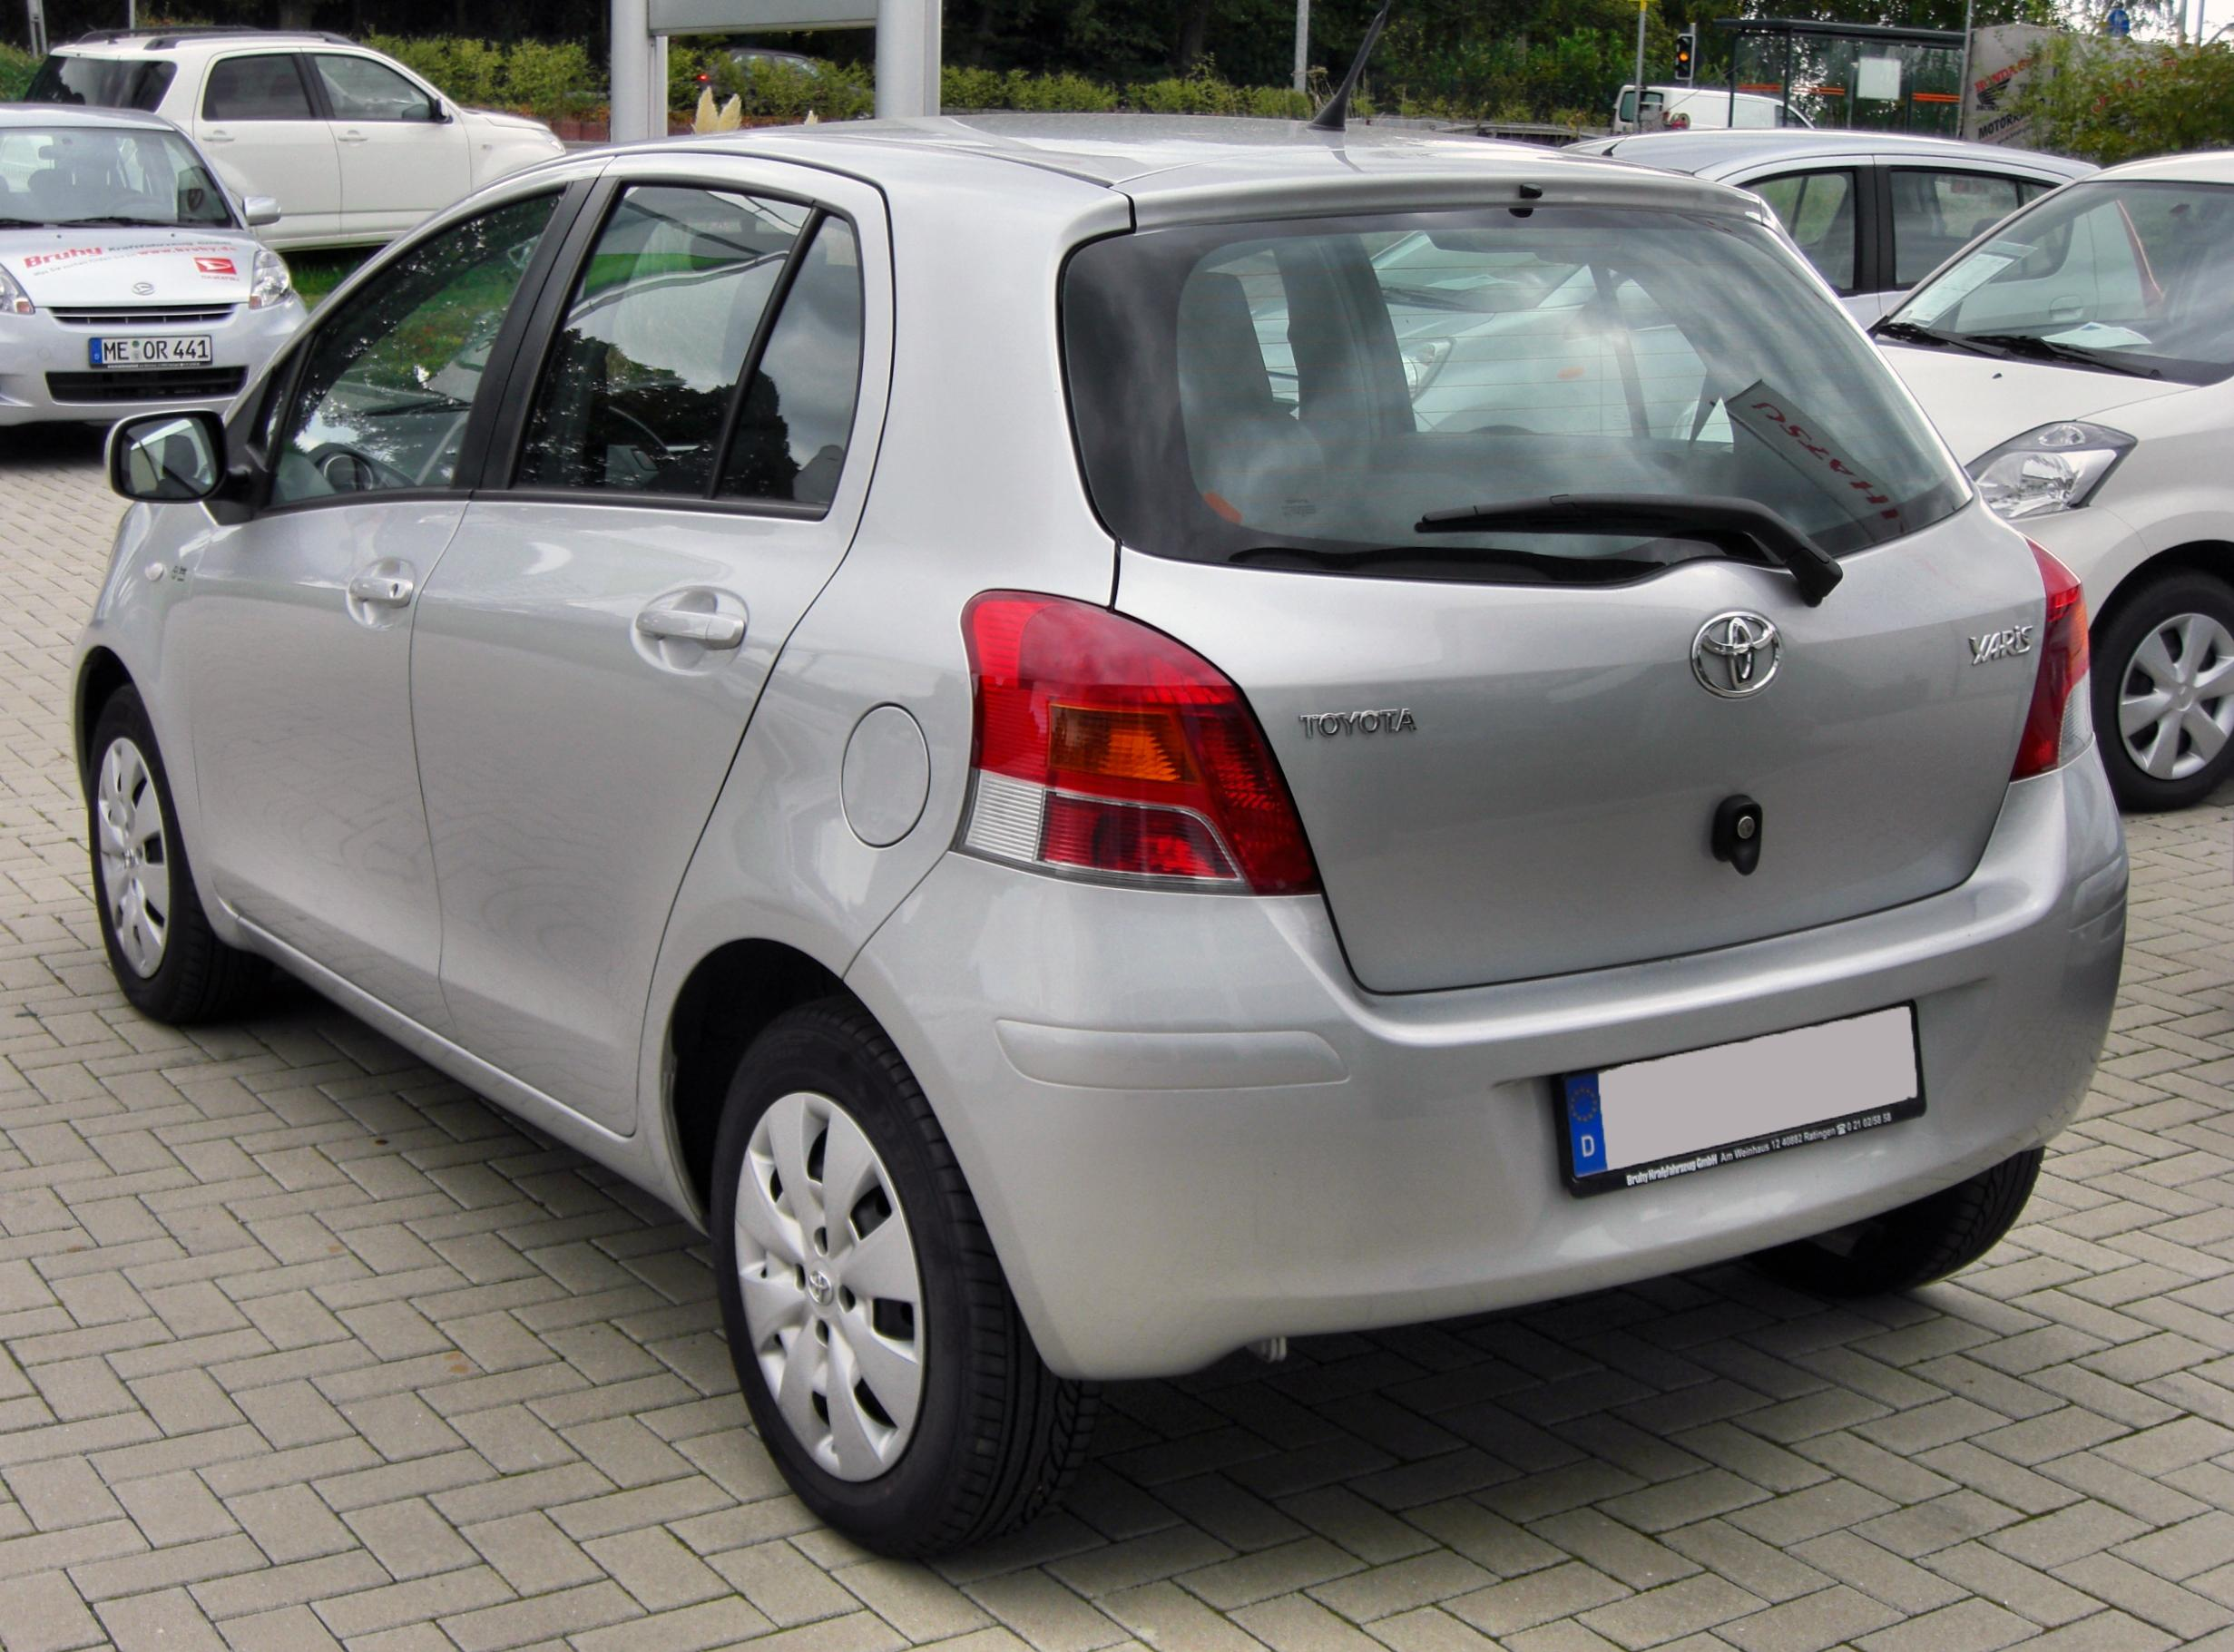 file toyota yaris ii facelift 20090912 rear jpg wikipedia. Black Bedroom Furniture Sets. Home Design Ideas